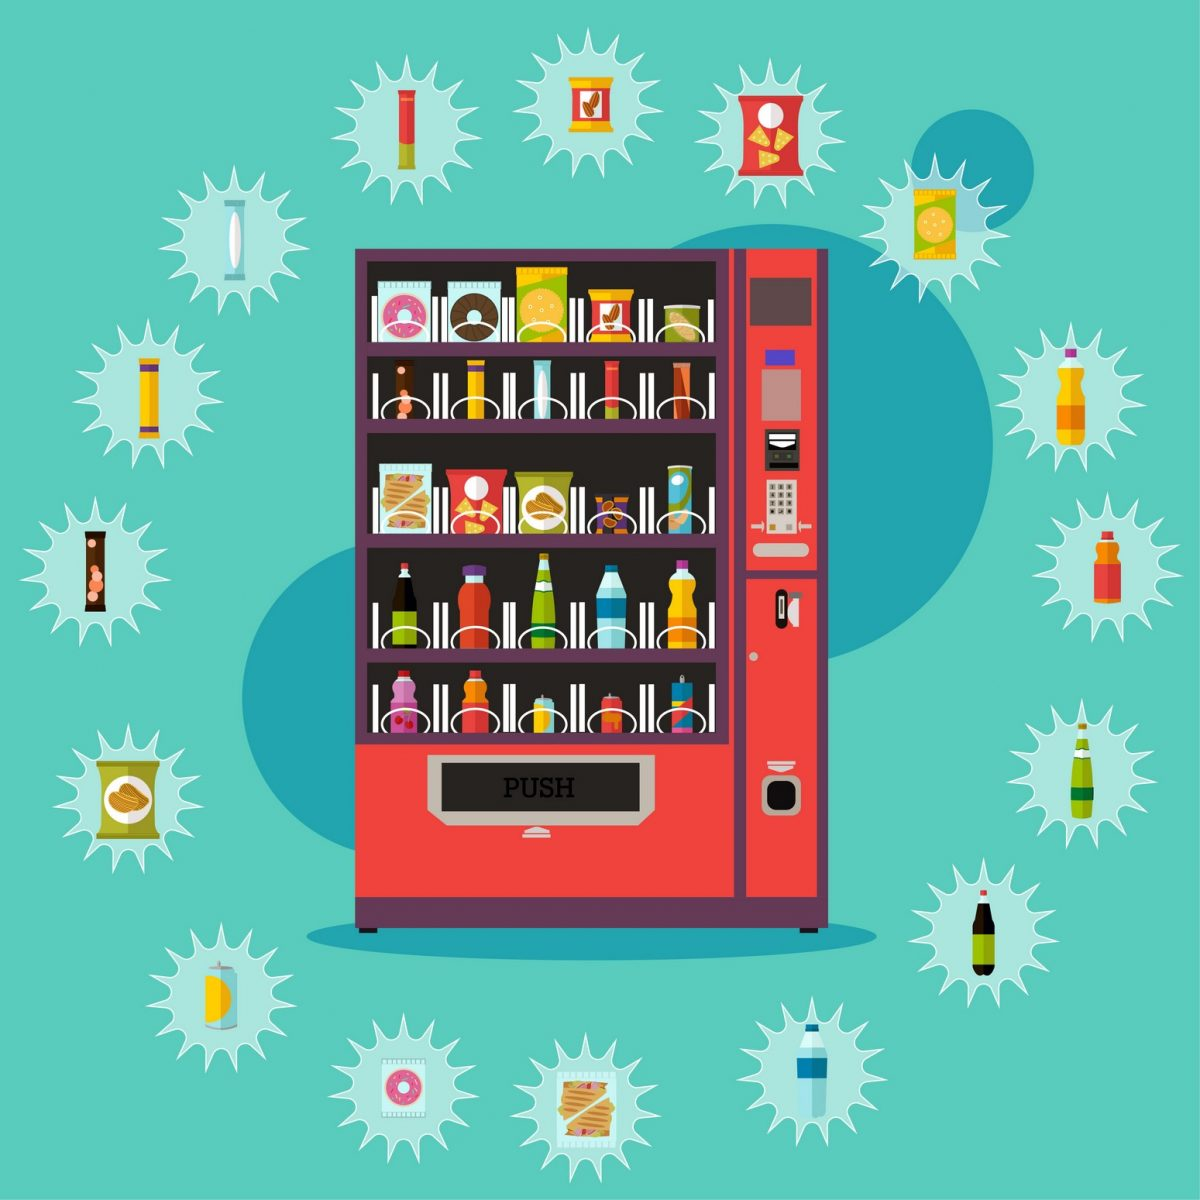 Southern California, the Central Coast and Bakersfield Area Employee Perks | Refreshing Drink | Snack Vending | Refreshment Services